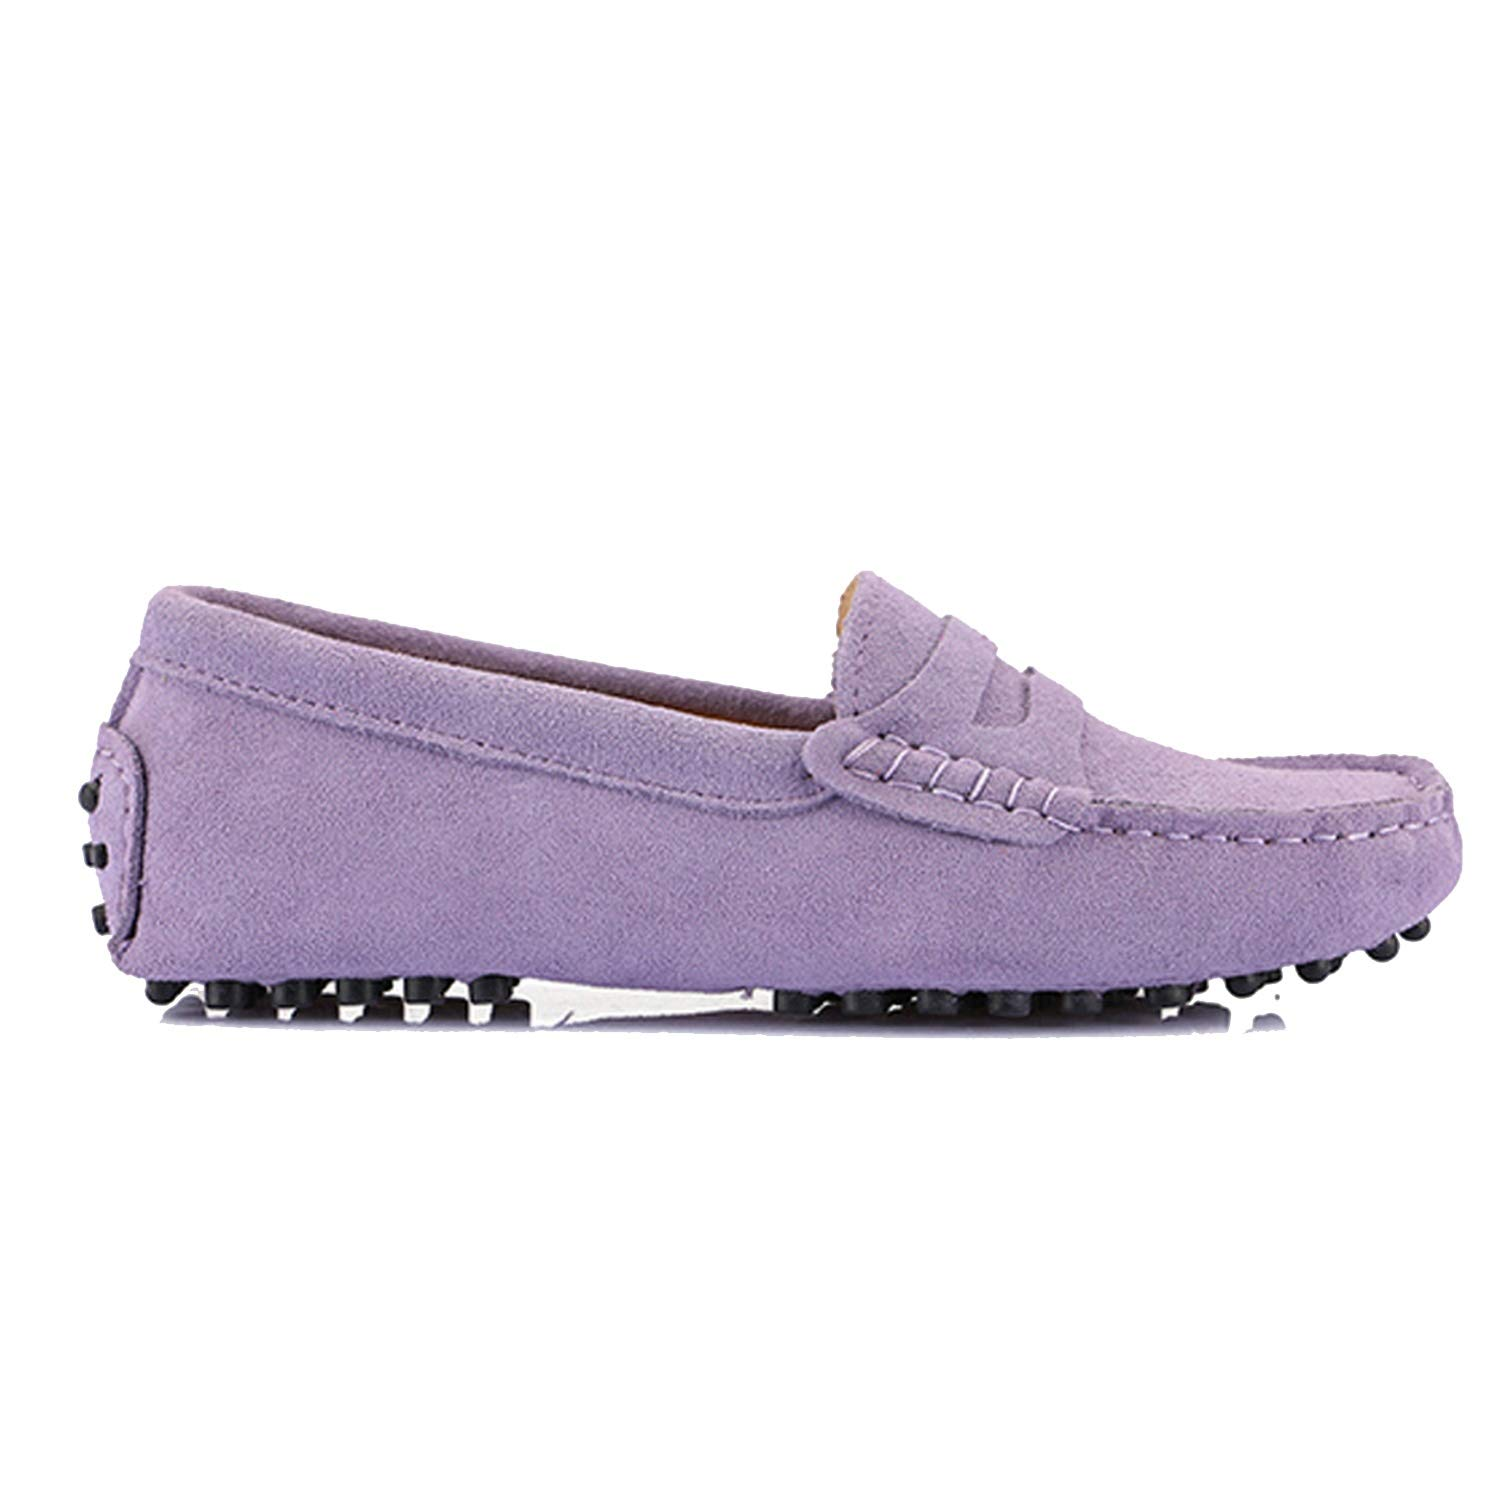 Purple Women's Woman shoes Flats Casual Loafers Soft Slip On Moccasins Lady Driving shoes